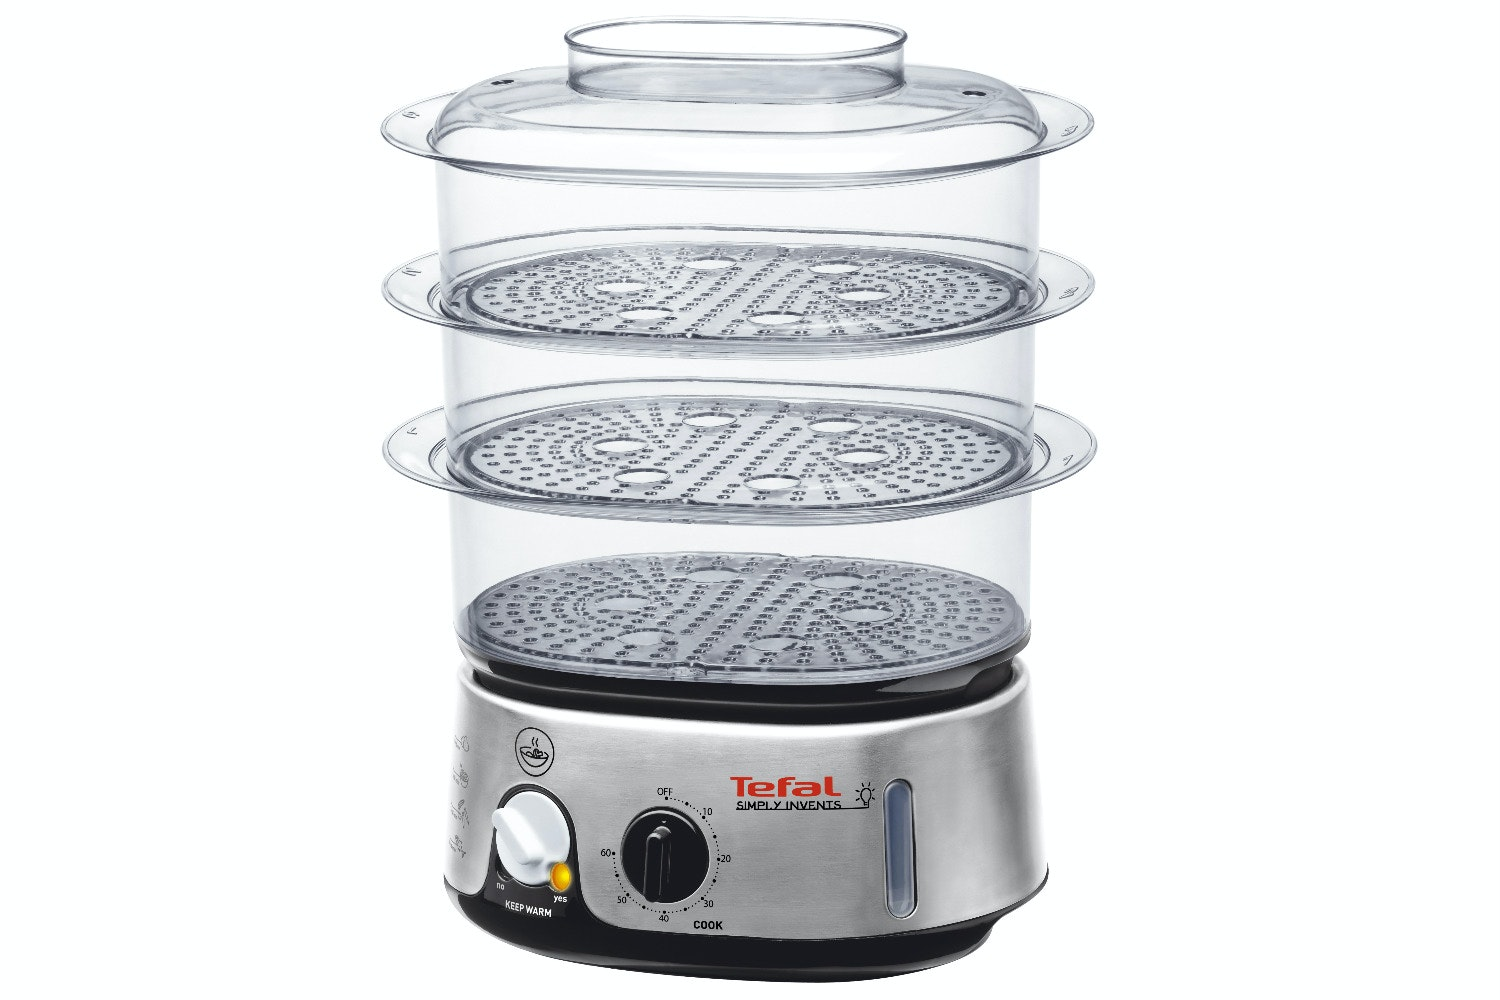 Tefal Simply Invents |  VC101616